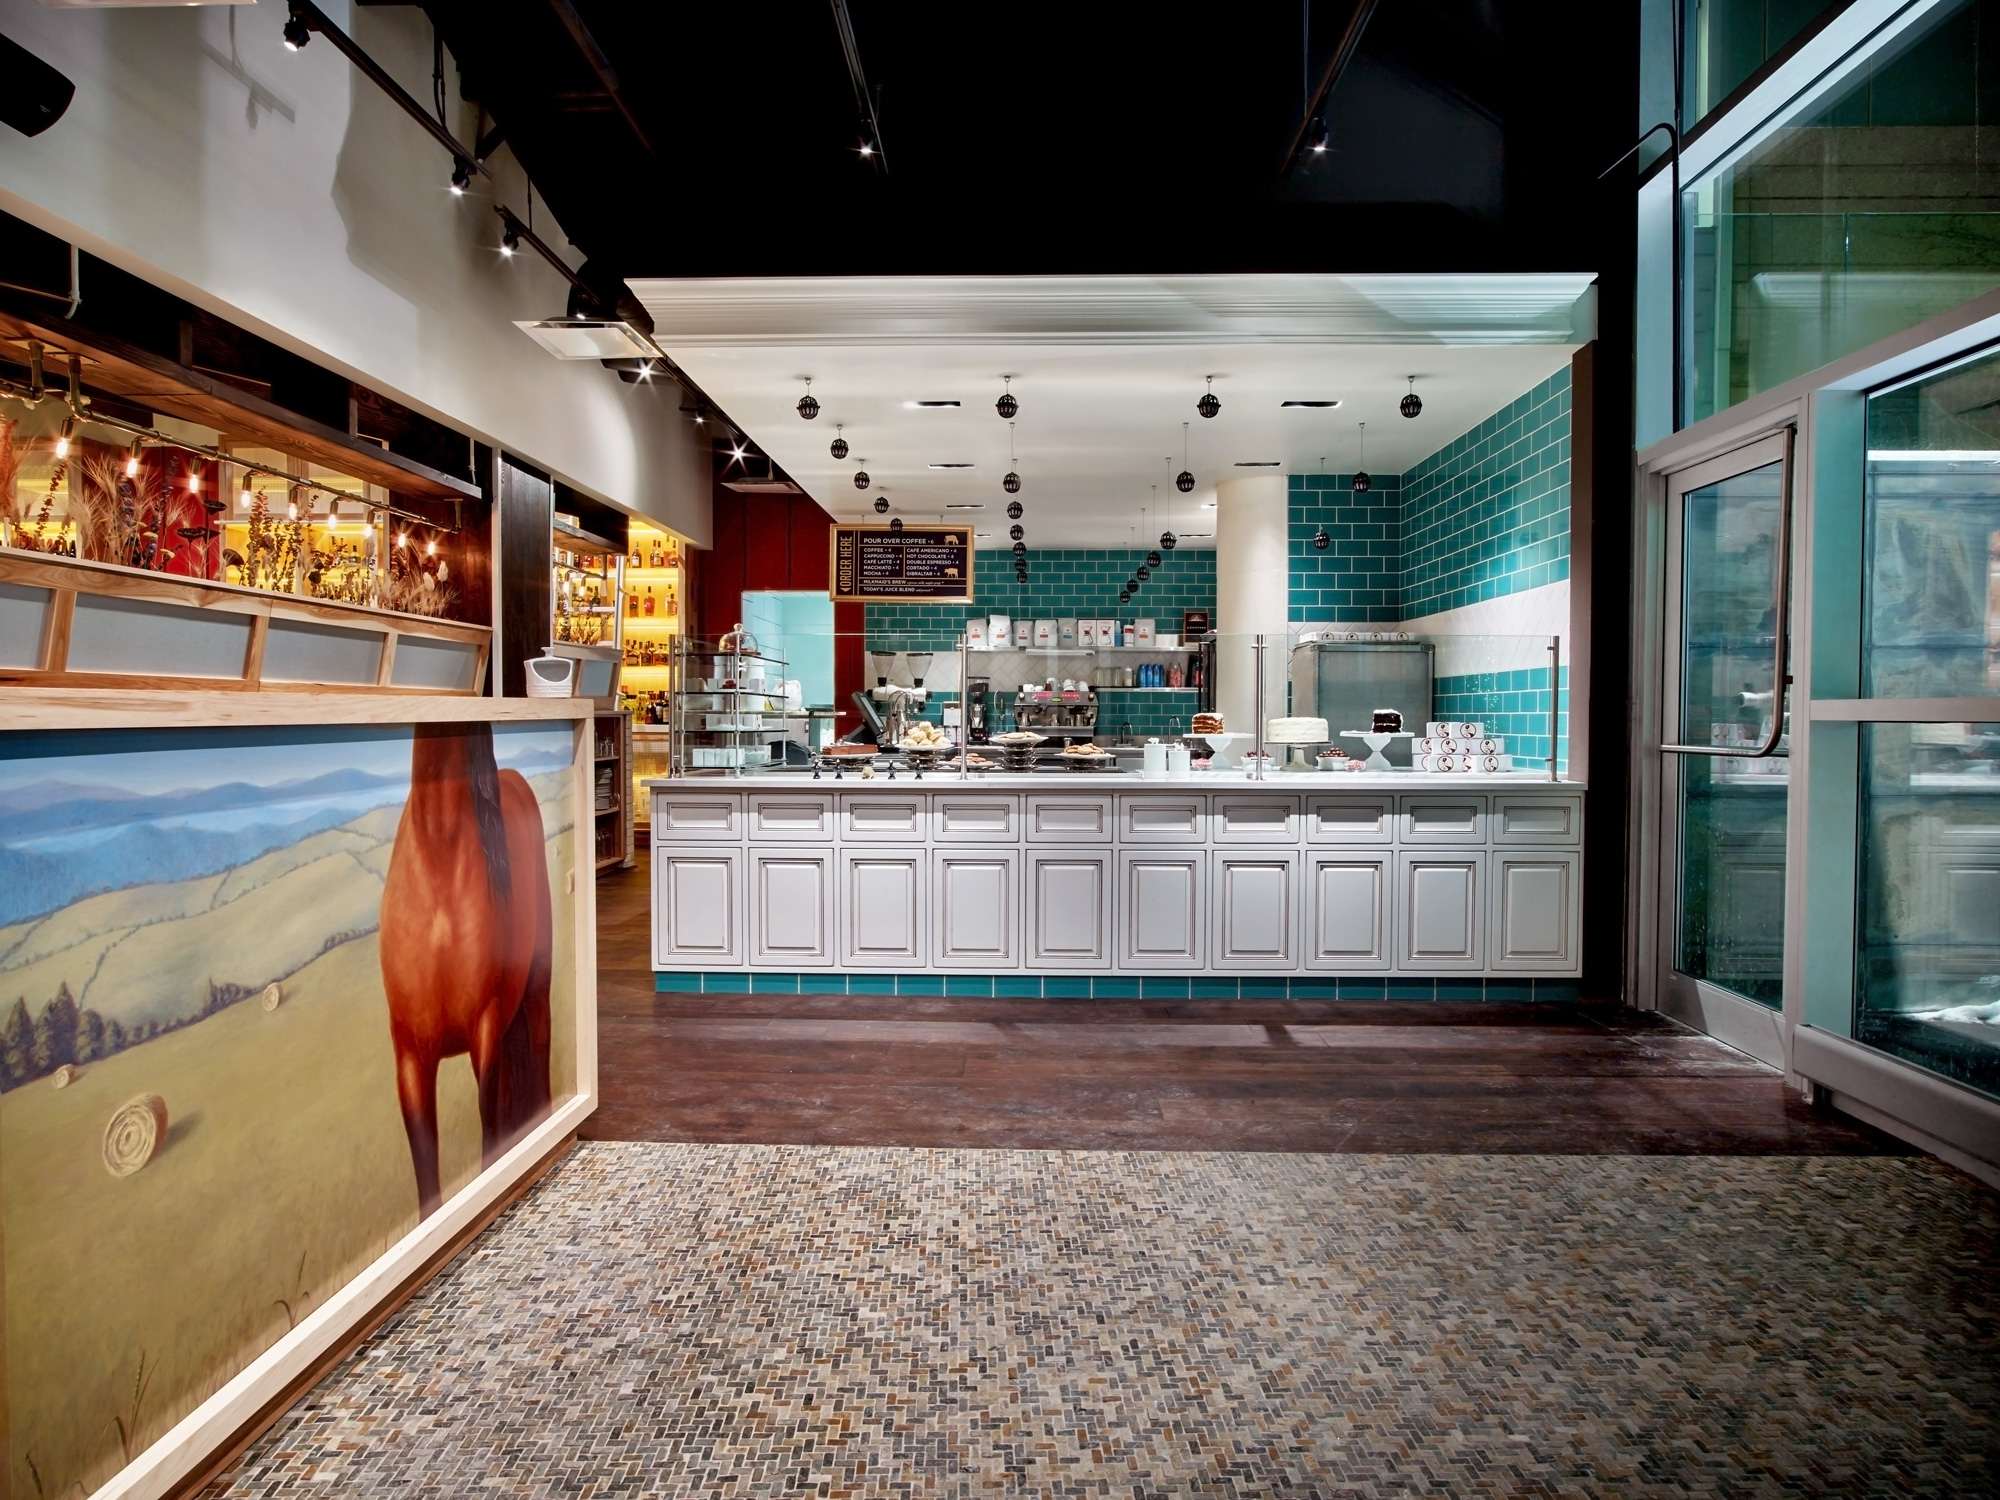 Feed the senses: Restaurants, chefs place more focus on design